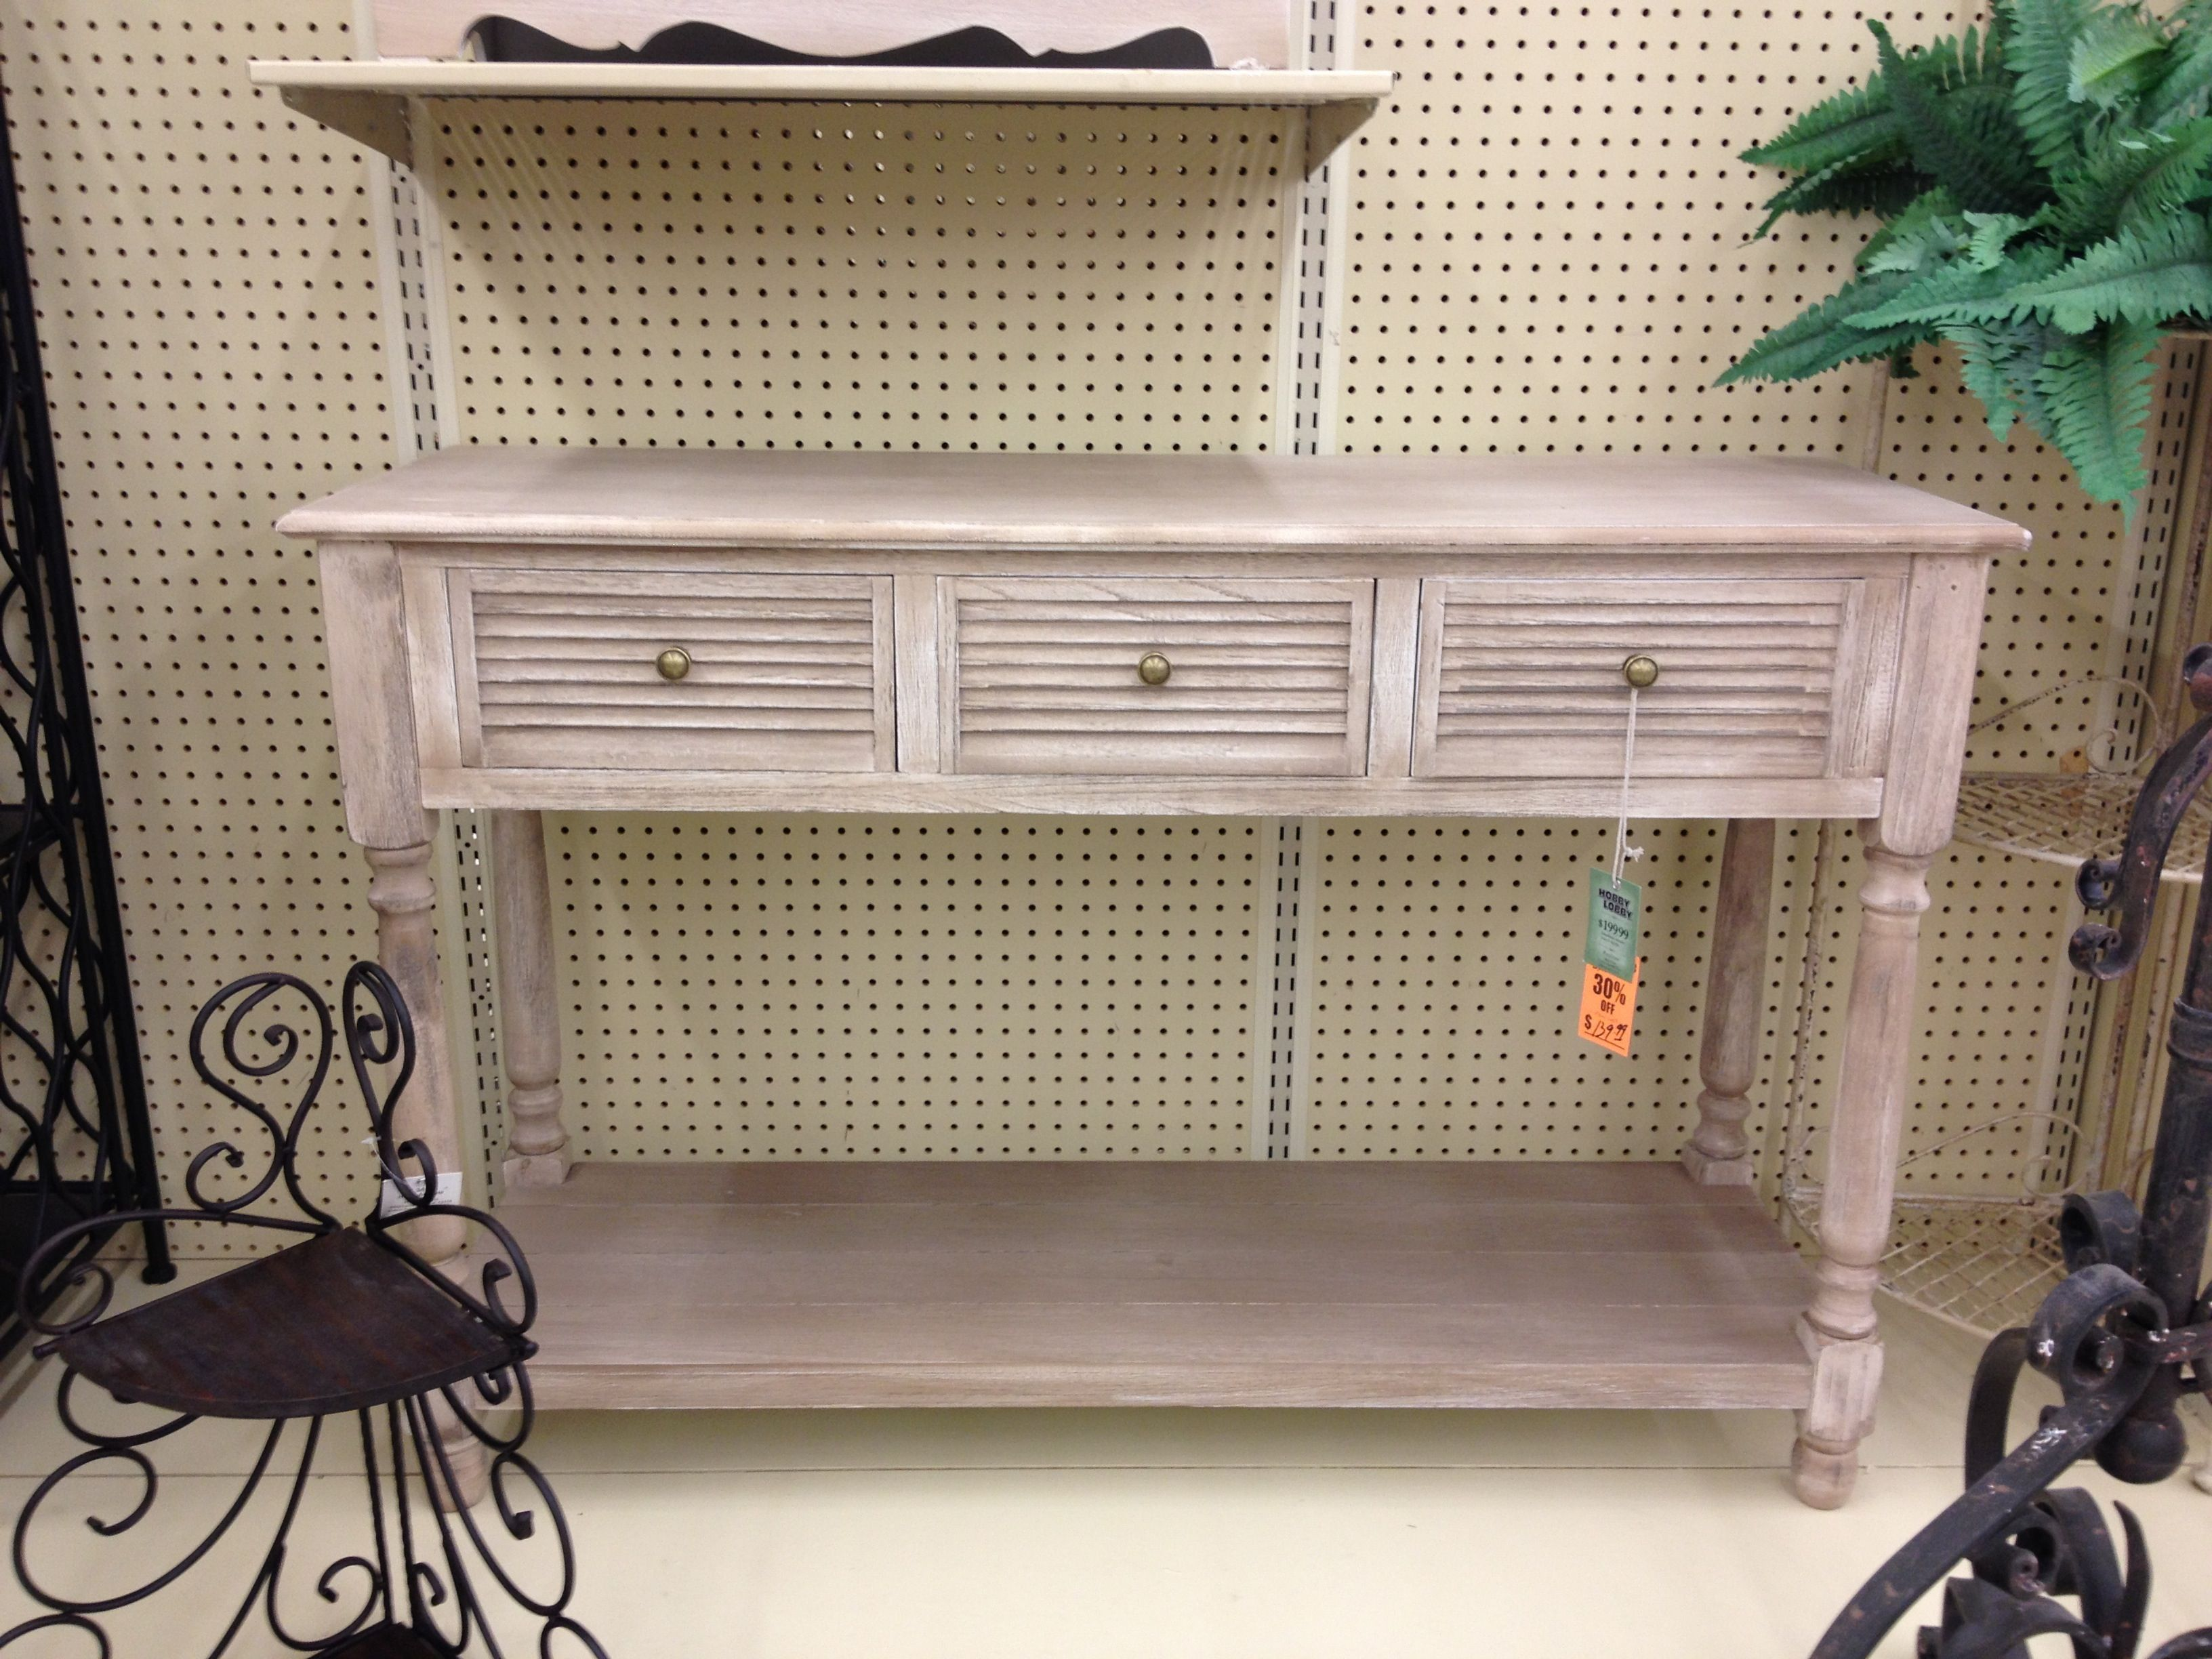 Pair of console tables 200 each on sale for 140 each hobby pair of console tables 200 each on sale for 140 each hobby lobby geotapseo Images